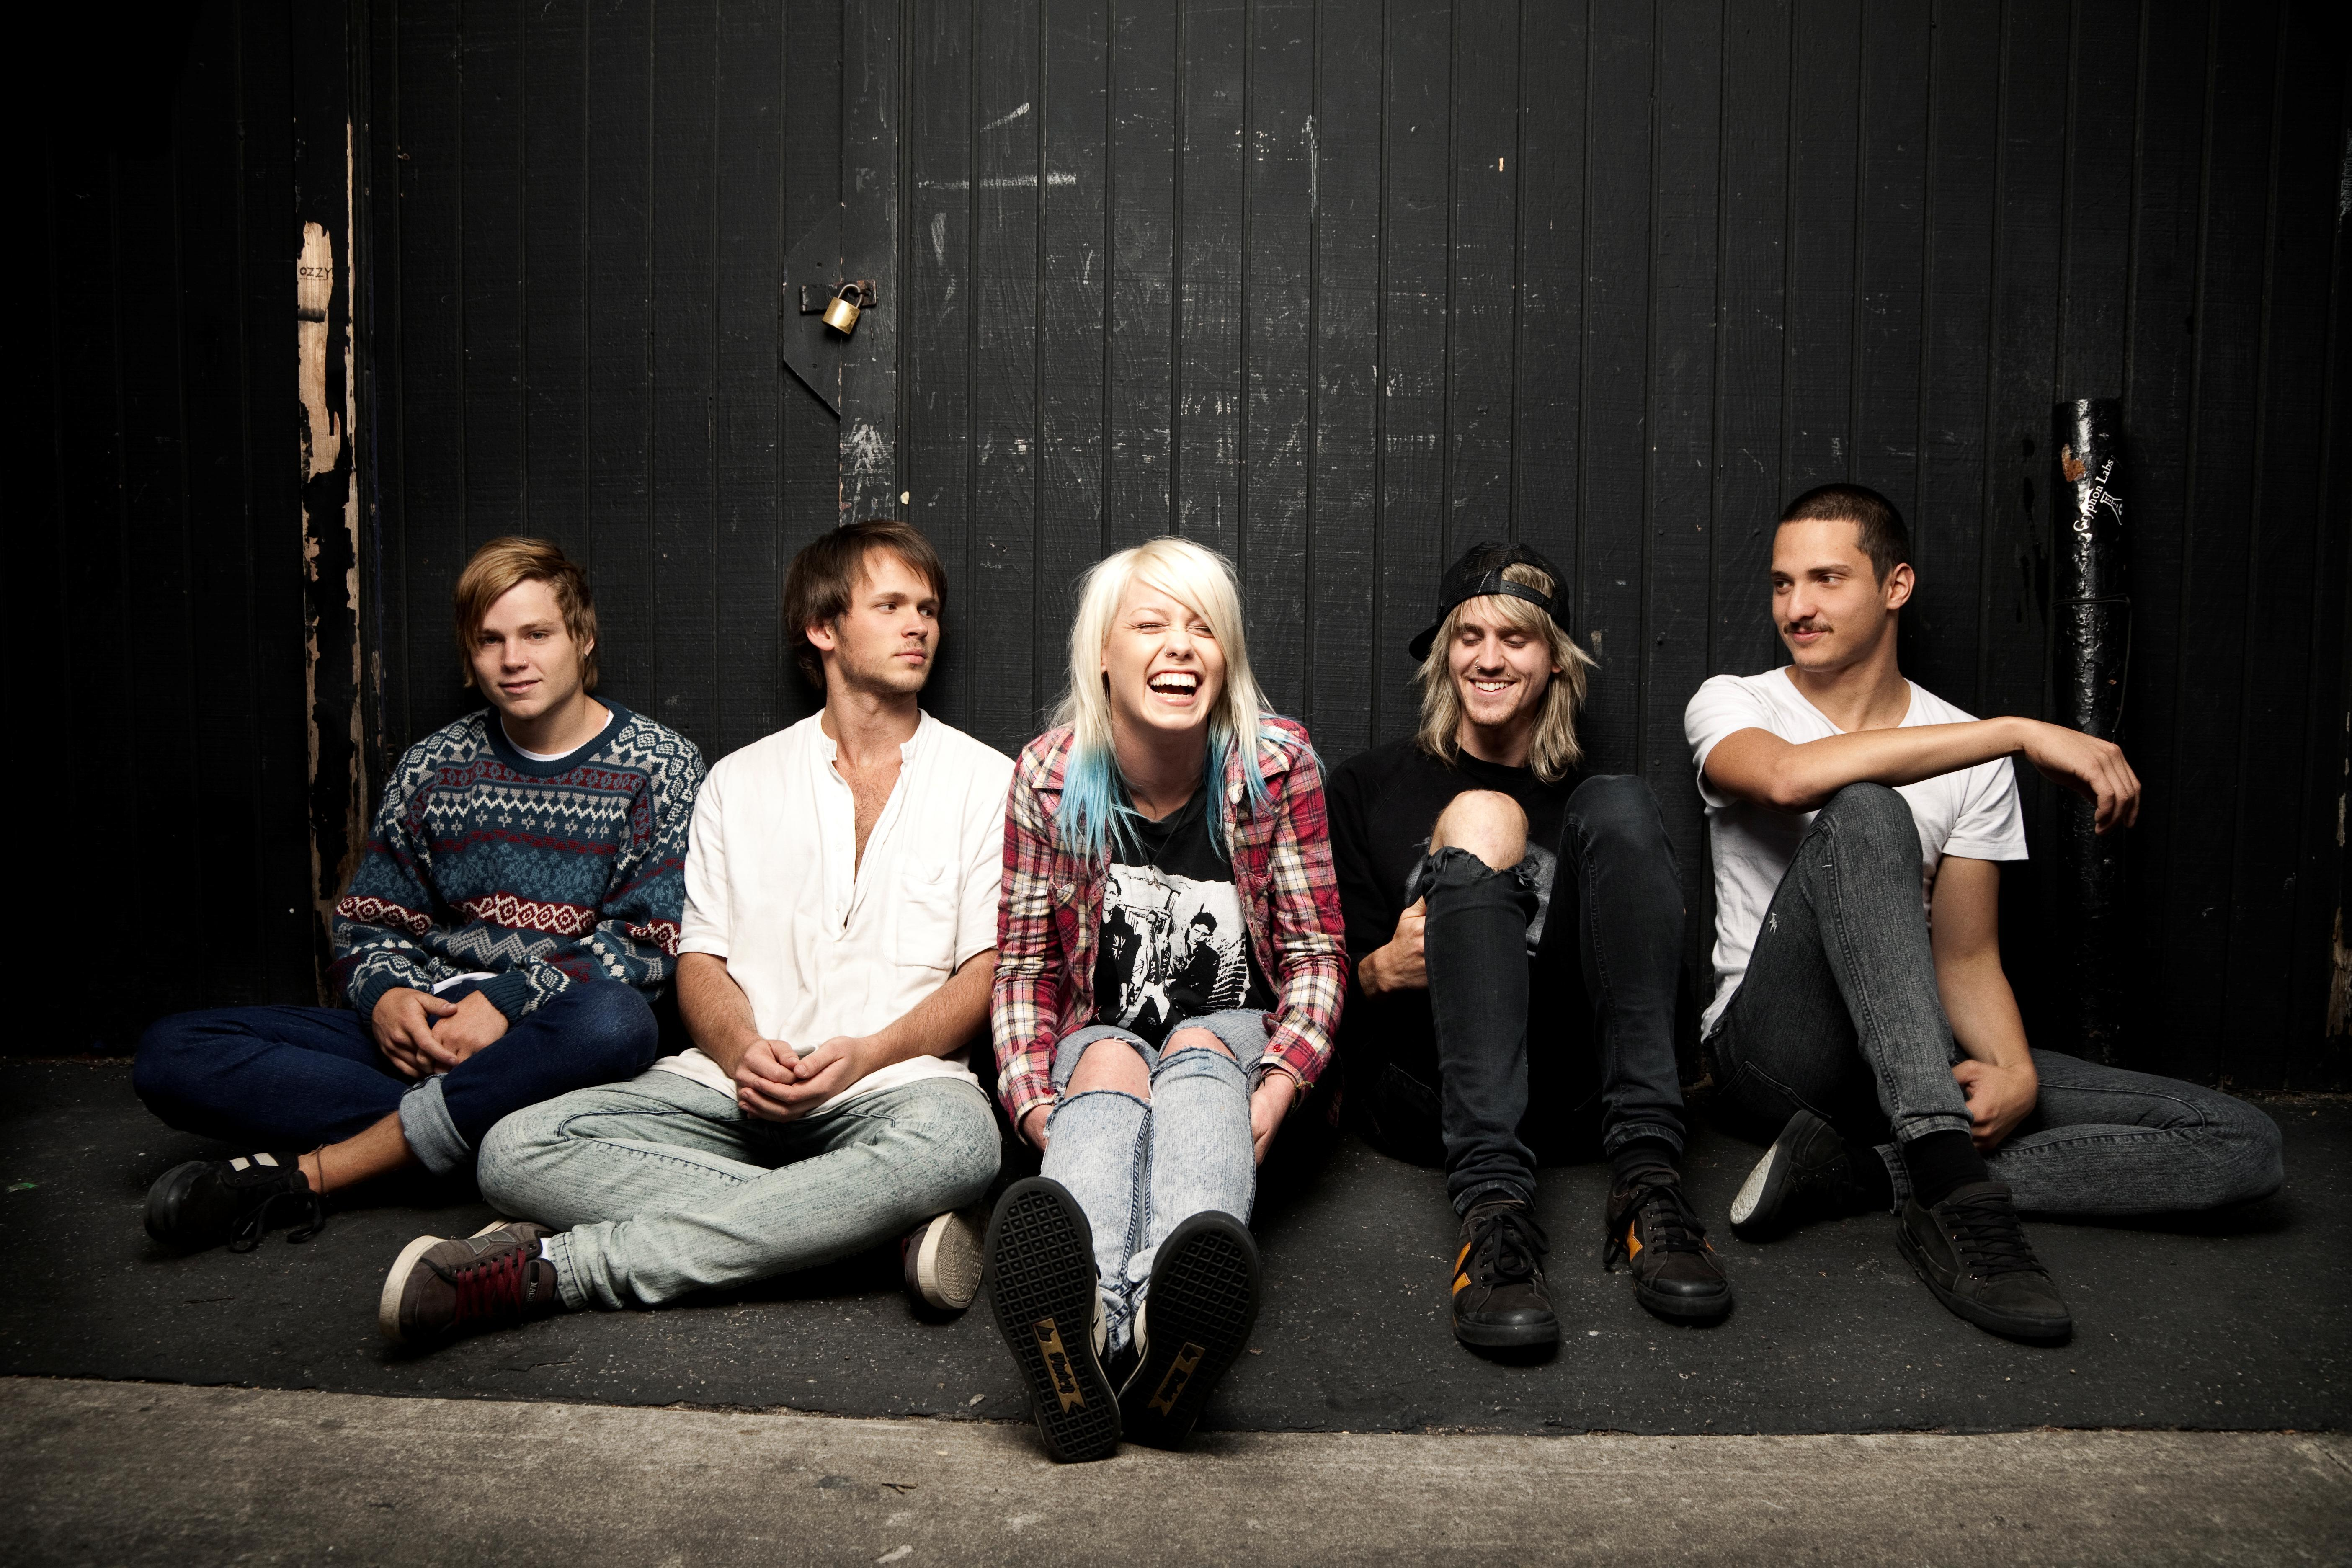 Tonight Alive Wallpapers Images Photos Pictures Backgrounds 5616x3744